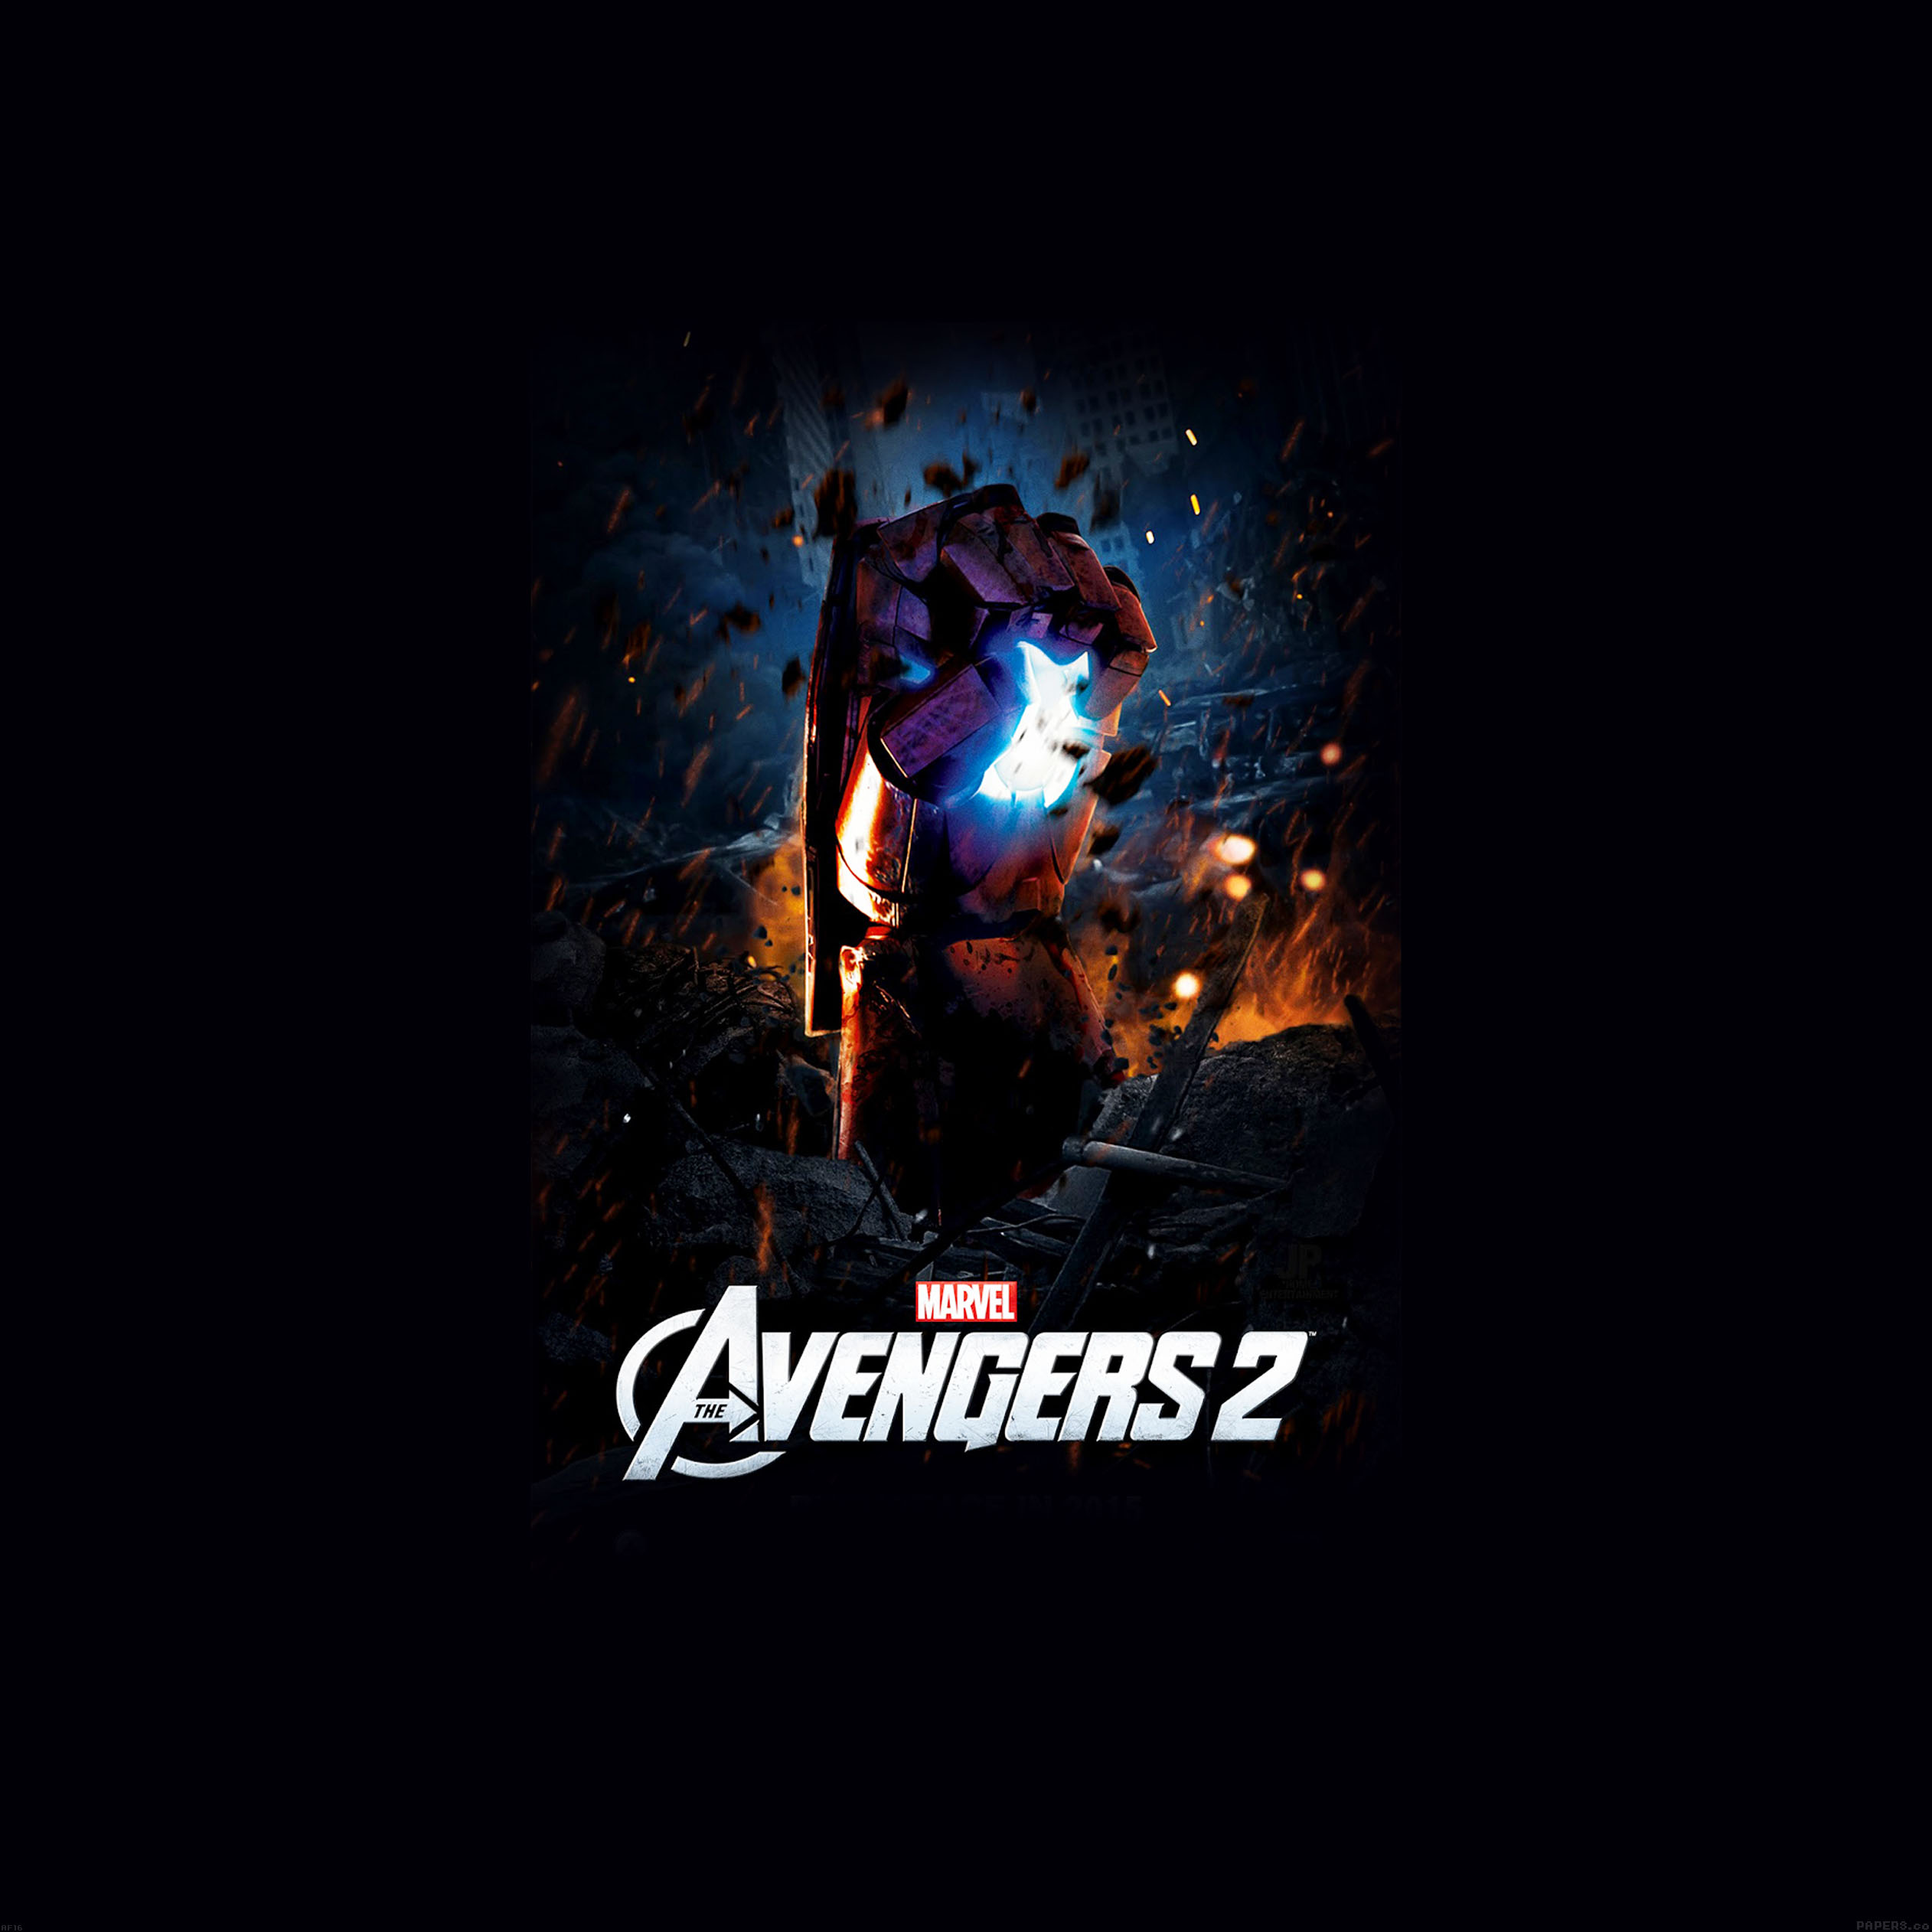 Avengers 2 Poster Hollywood Film 9 Wallpaper